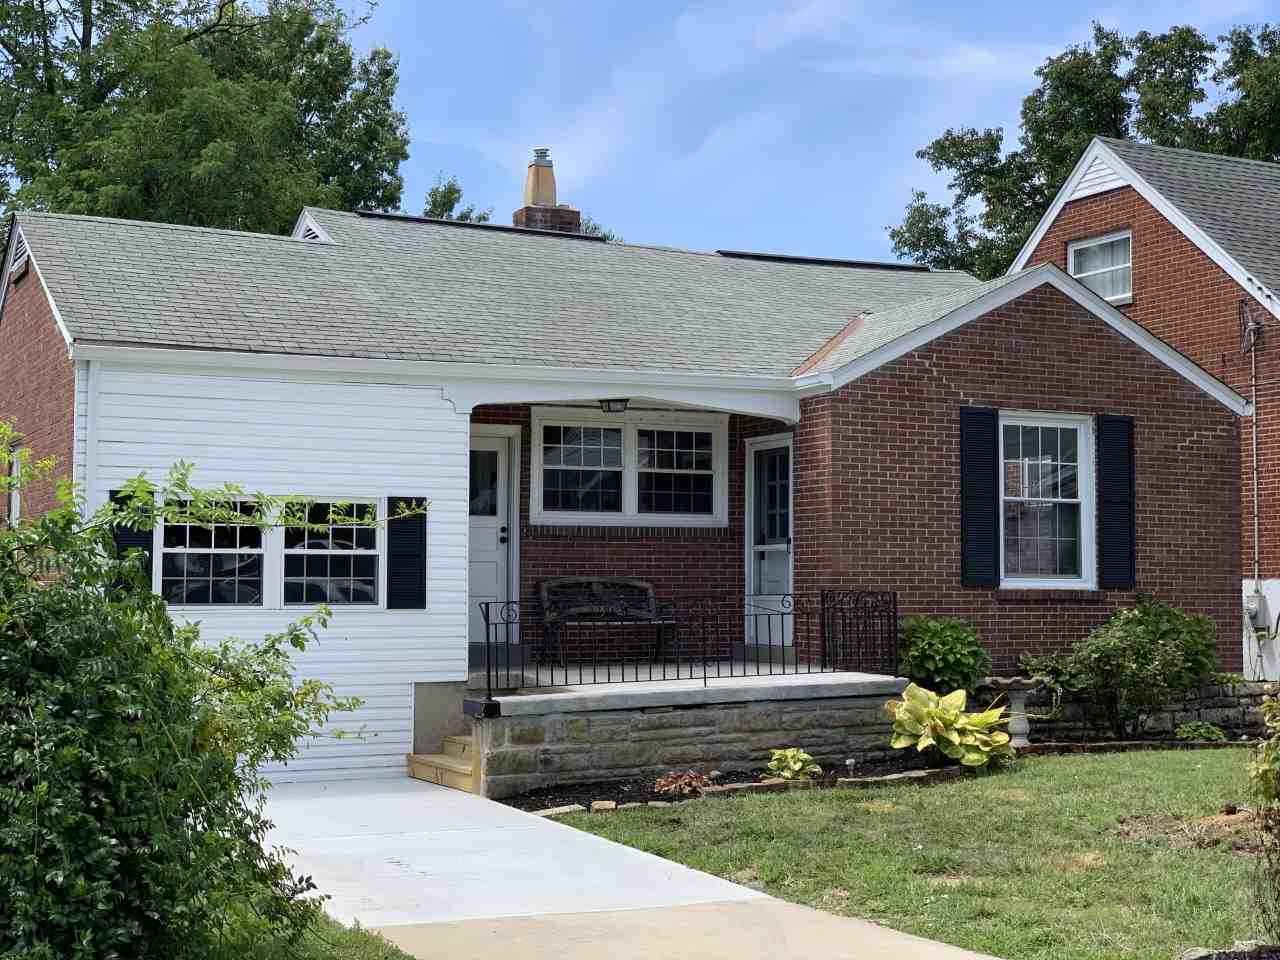 Photo 1 for 36 Park Ave Elsmere, KY 41018